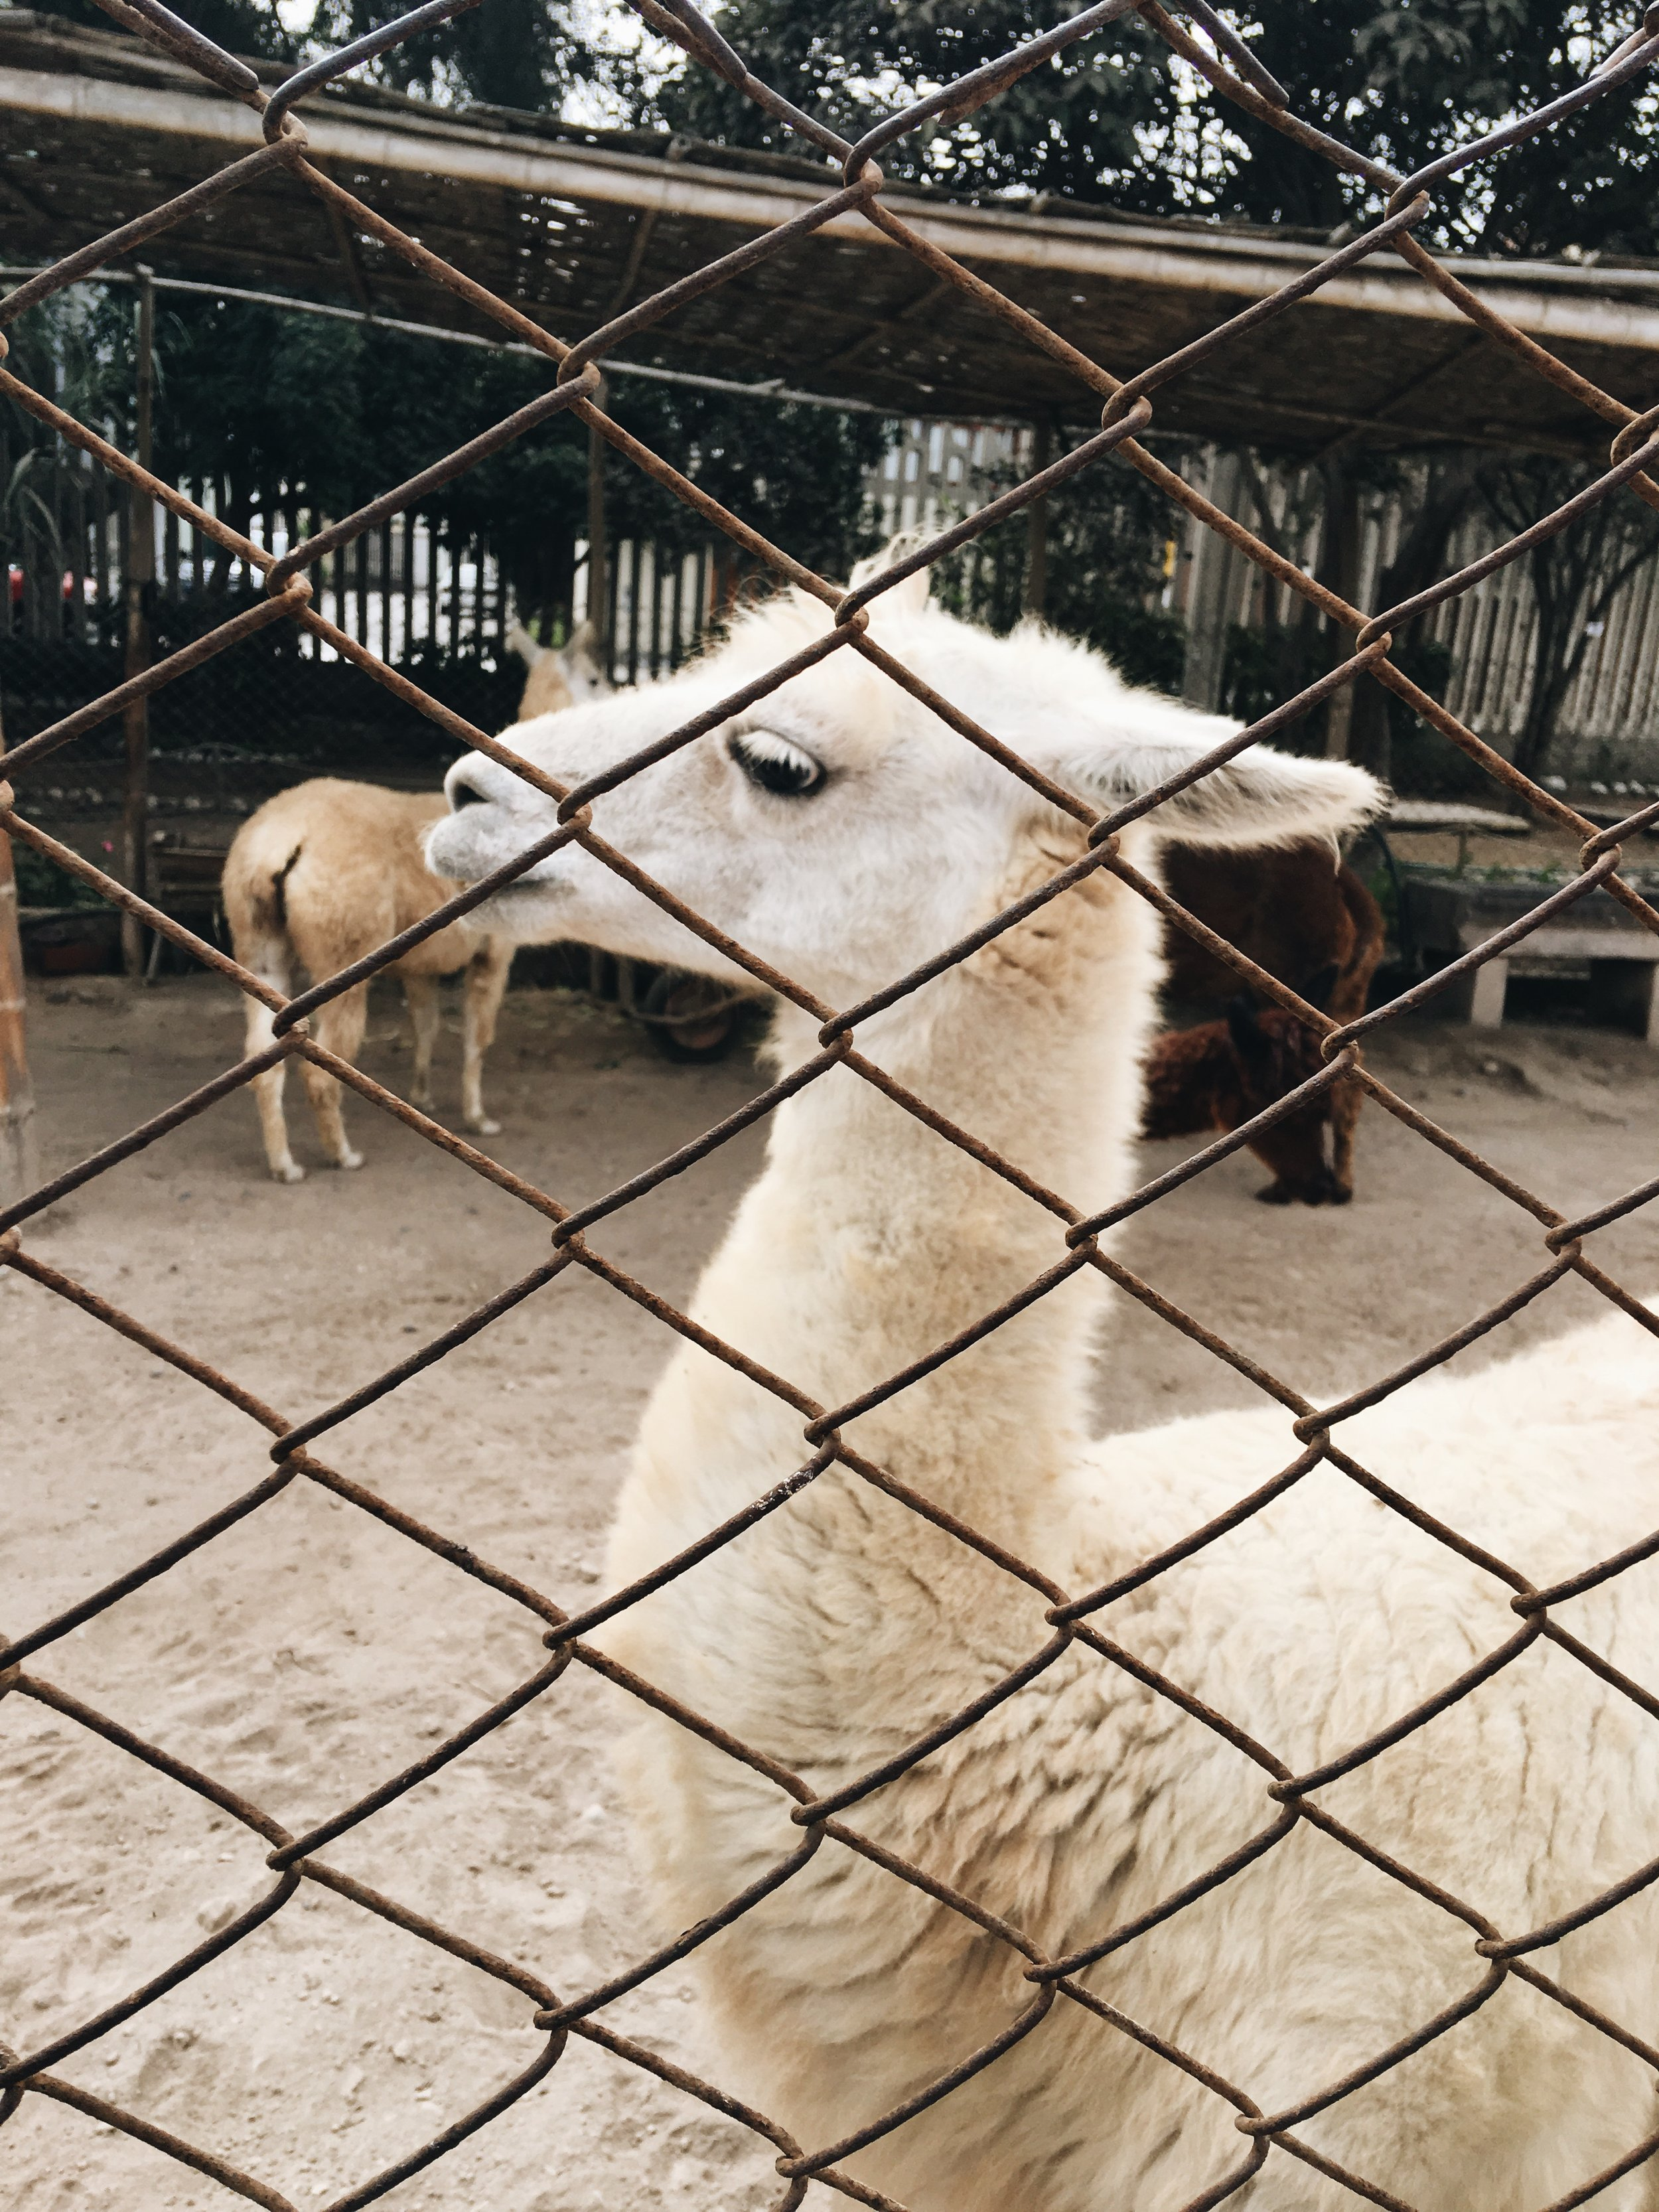 {never guessed we'd be seeing so many llamas in Peru, right? haha}